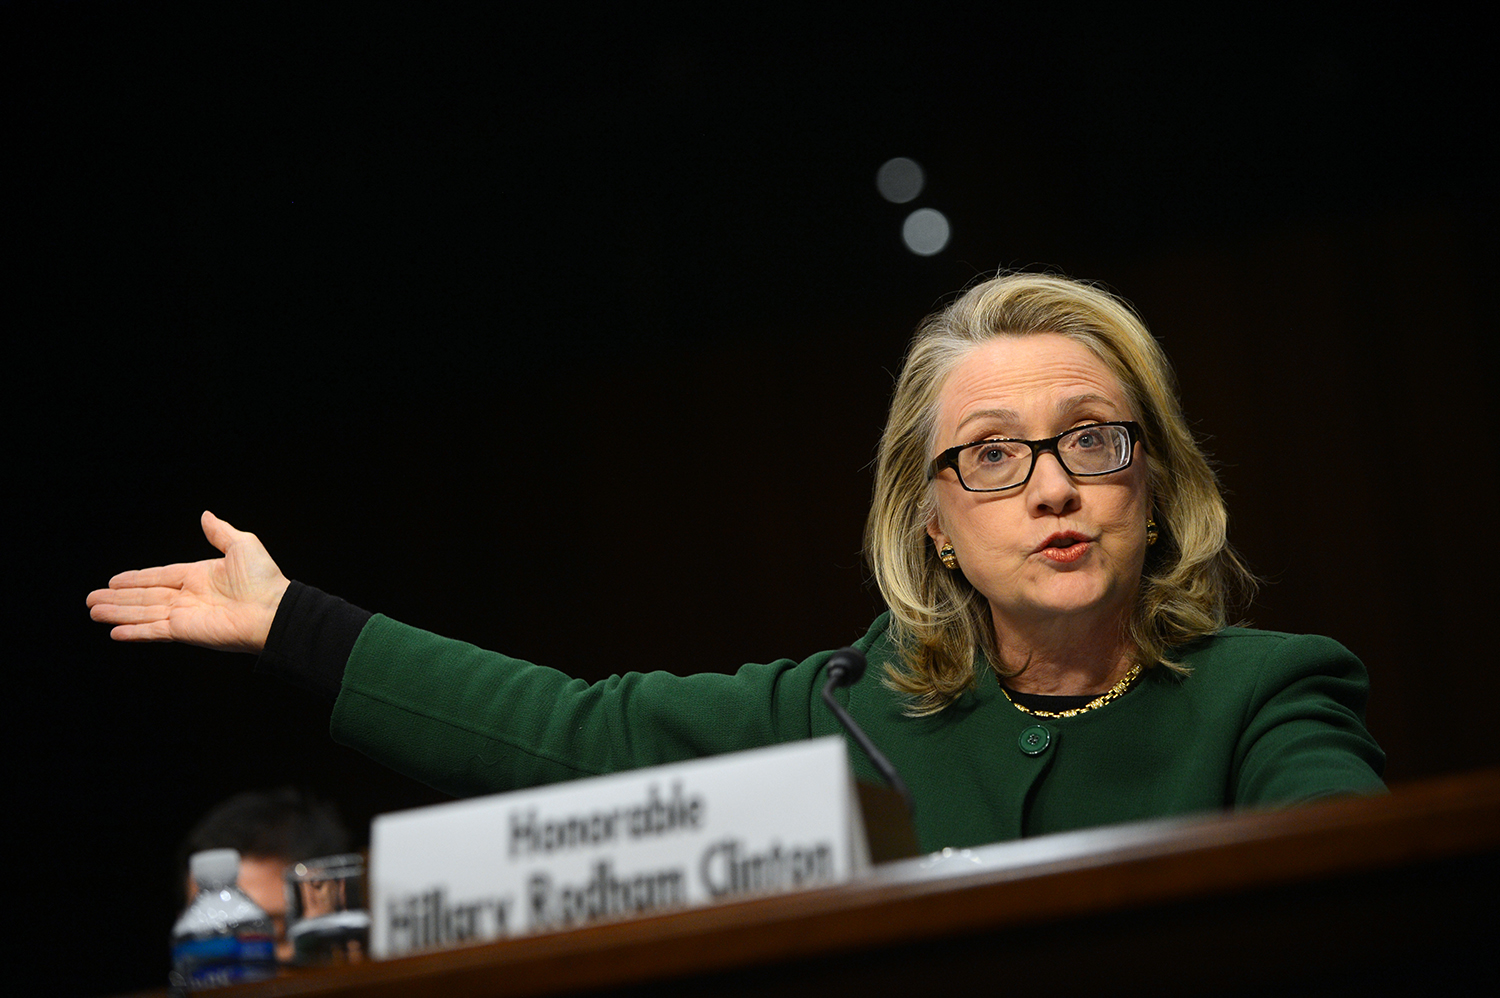 U.S. Secretary of State Hillary Clinton testifies before the Senate Foreign Relations Committee on the Sept. 11, 2012 attack on the U.S. mission in Benghazi, Libya, during a hearing on Capitol Hill in Washington on Jan. 23, 2013.